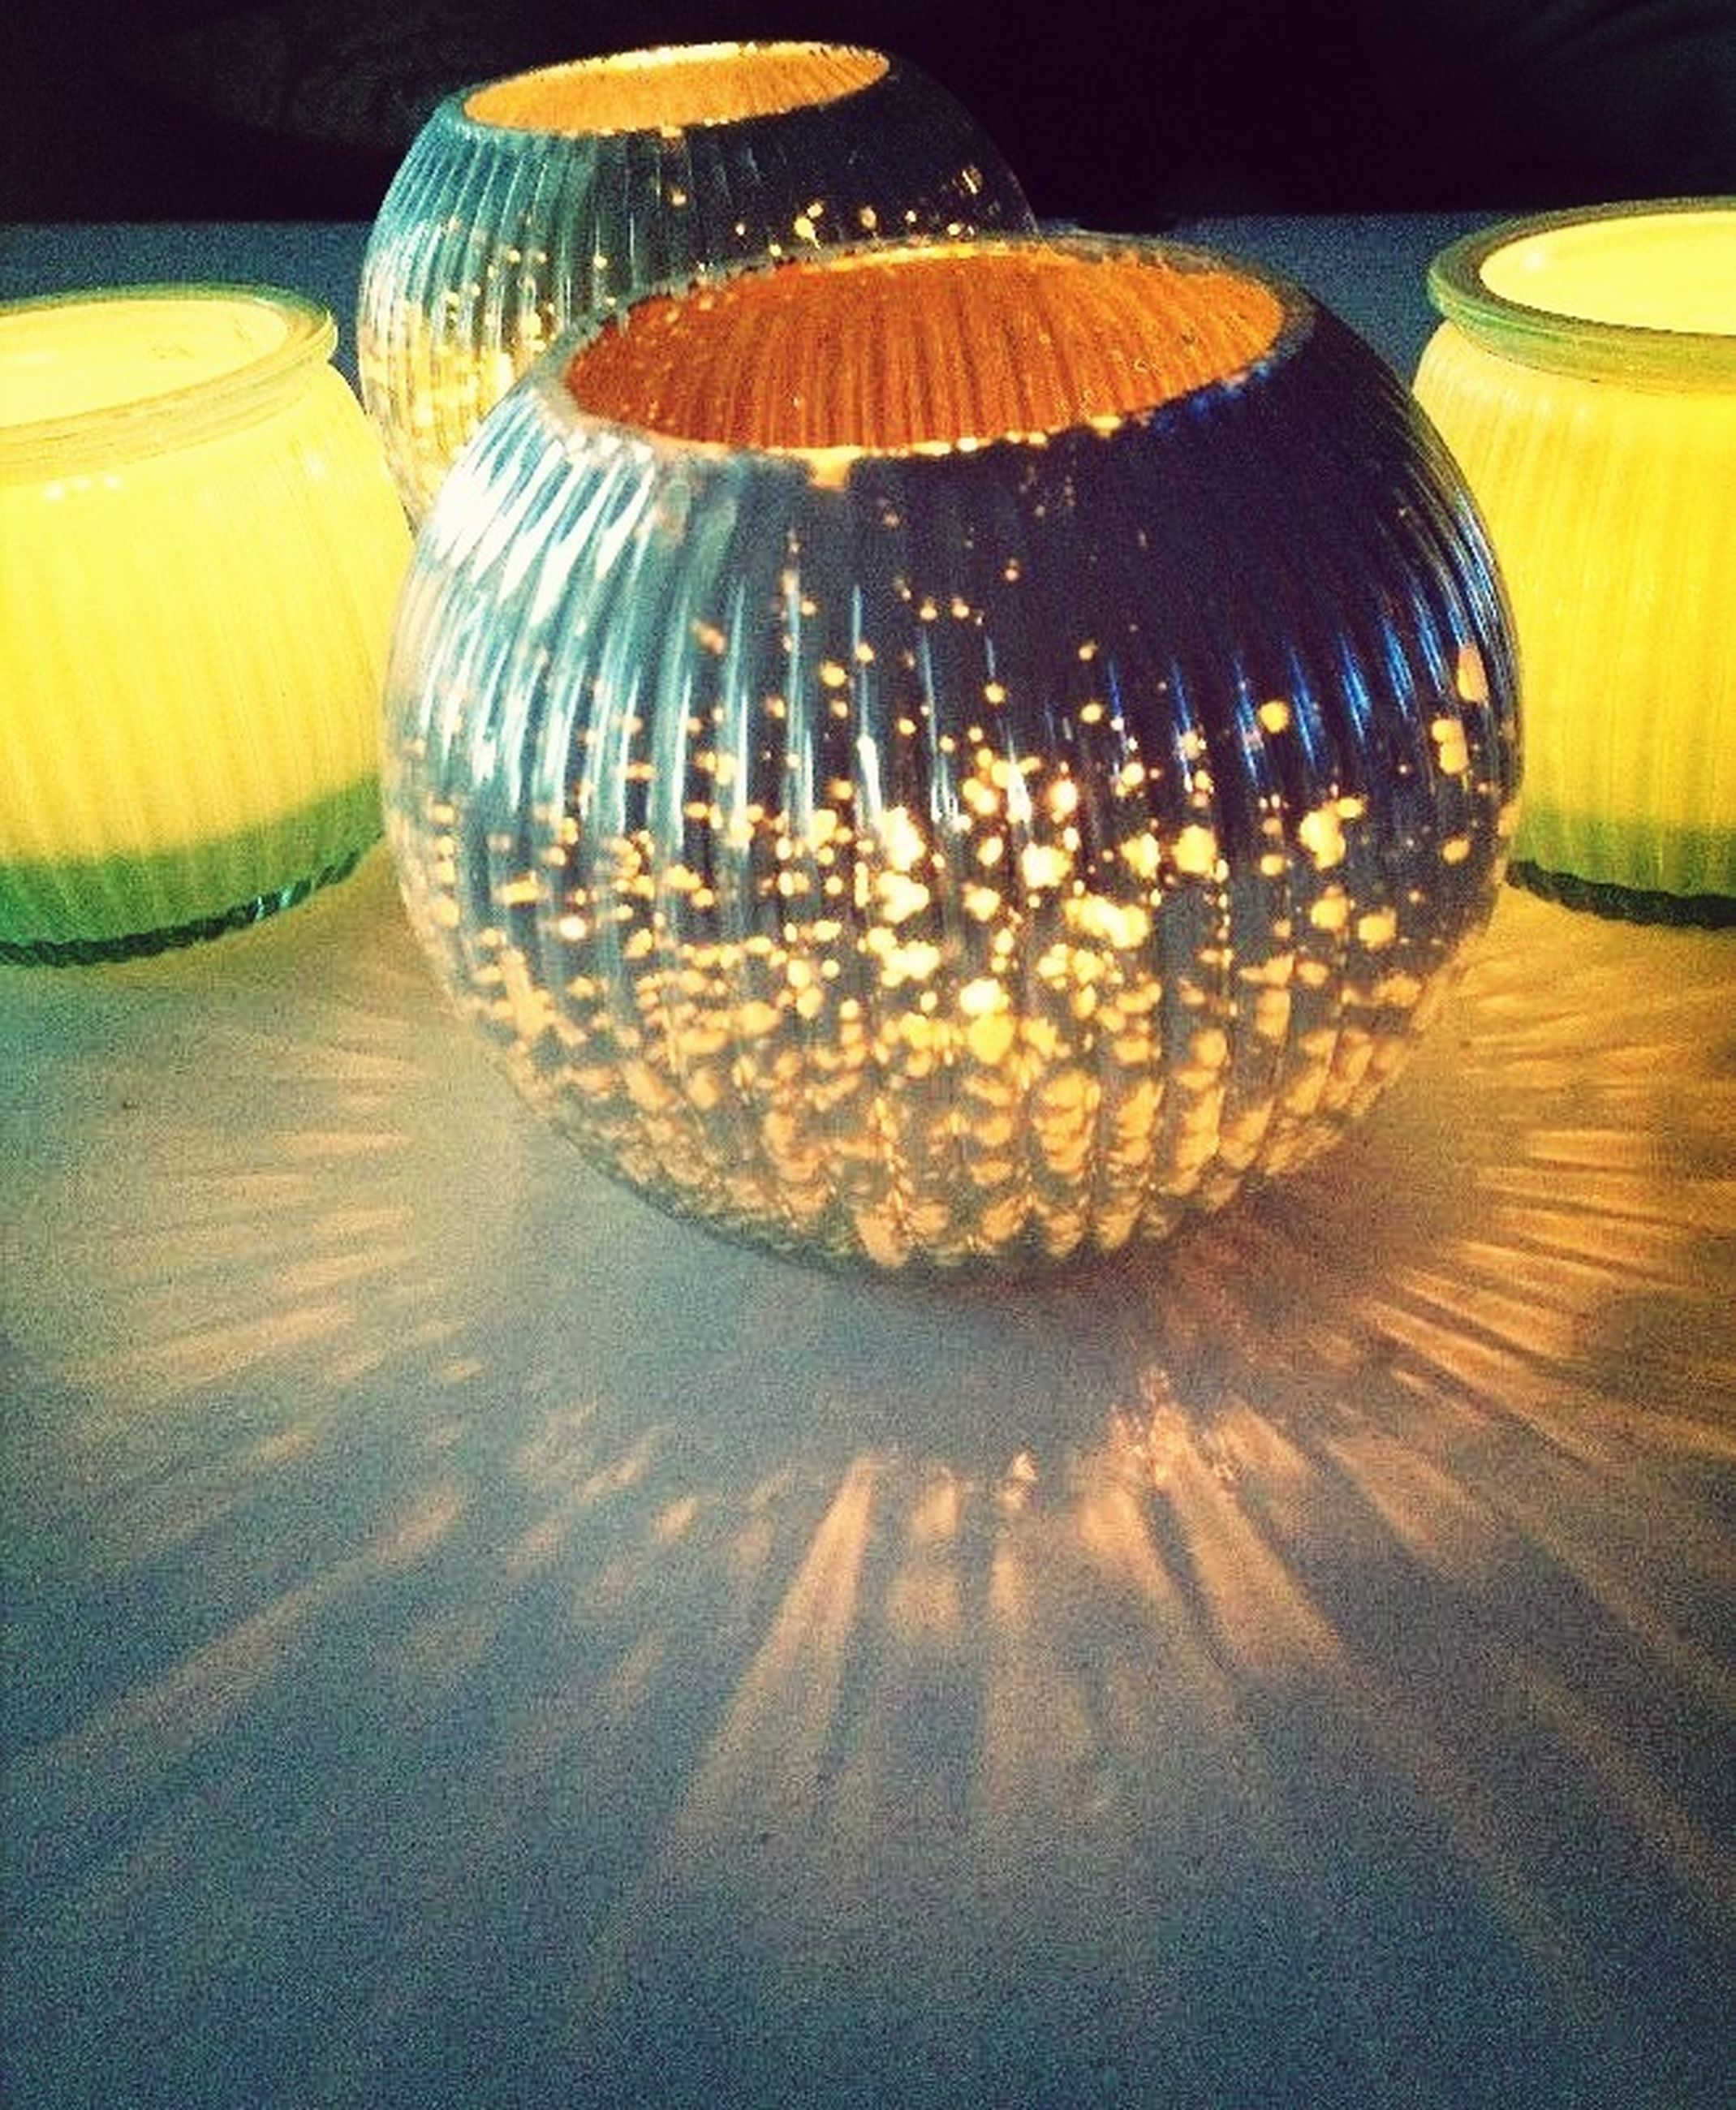 indoors, illuminated, decoration, still life, celebration, close-up, tradition, multi colored, pattern, night, cultures, no people, sphere, design, table, art and craft, lighting equipment, lantern, yellow, glowing